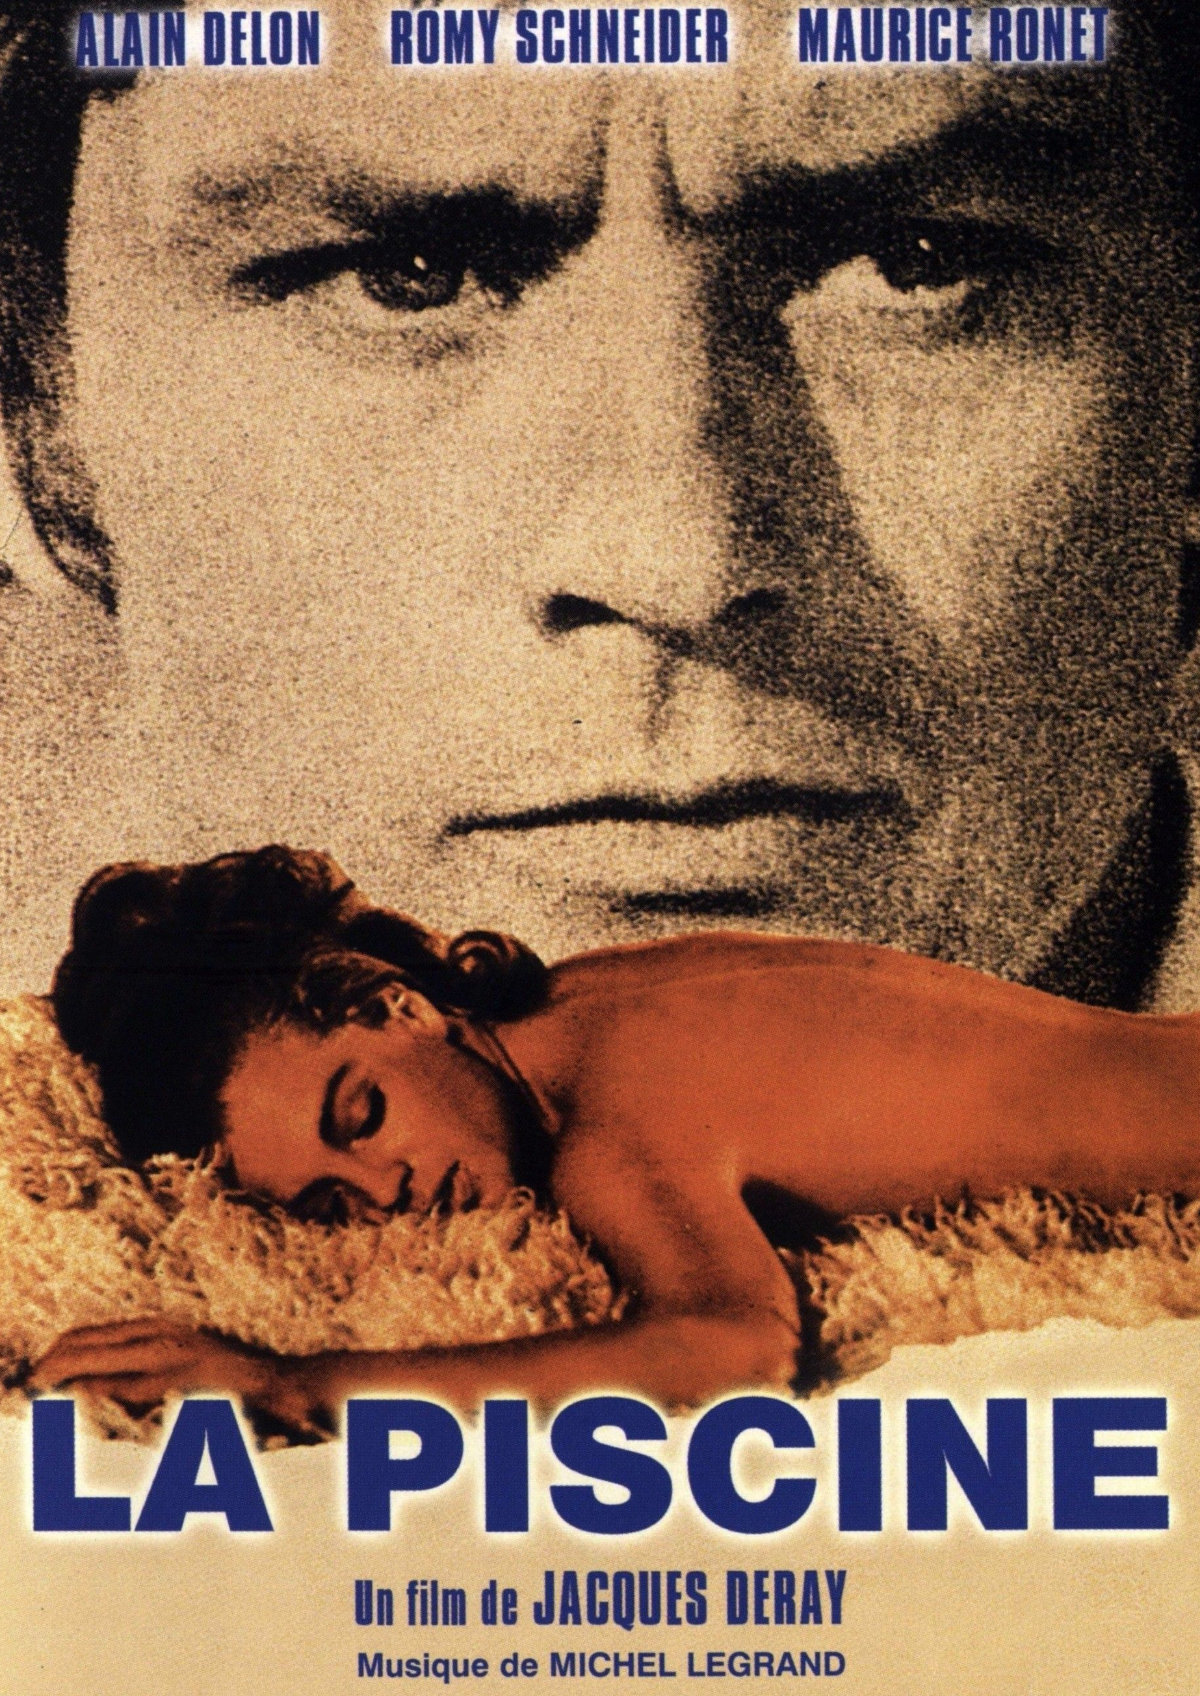 'La Piscine (The Swimming Pool)' movie poster